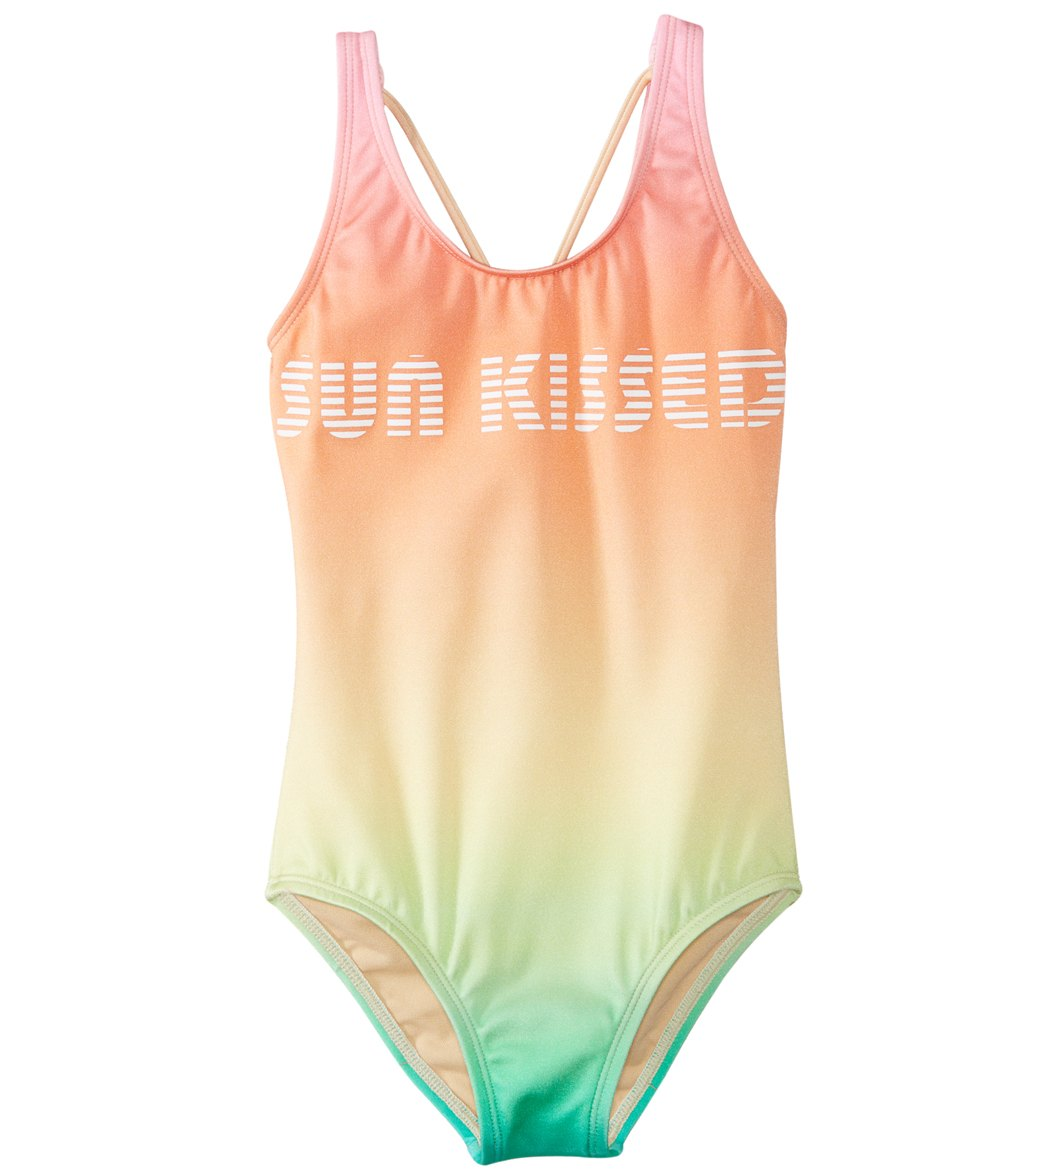 391195b7a9fa25 Reef Girls' Teen Spirit Retro Maillot One Piece Swimsuit (Big Kid) at  SwimOutlet.com - Free Shipping